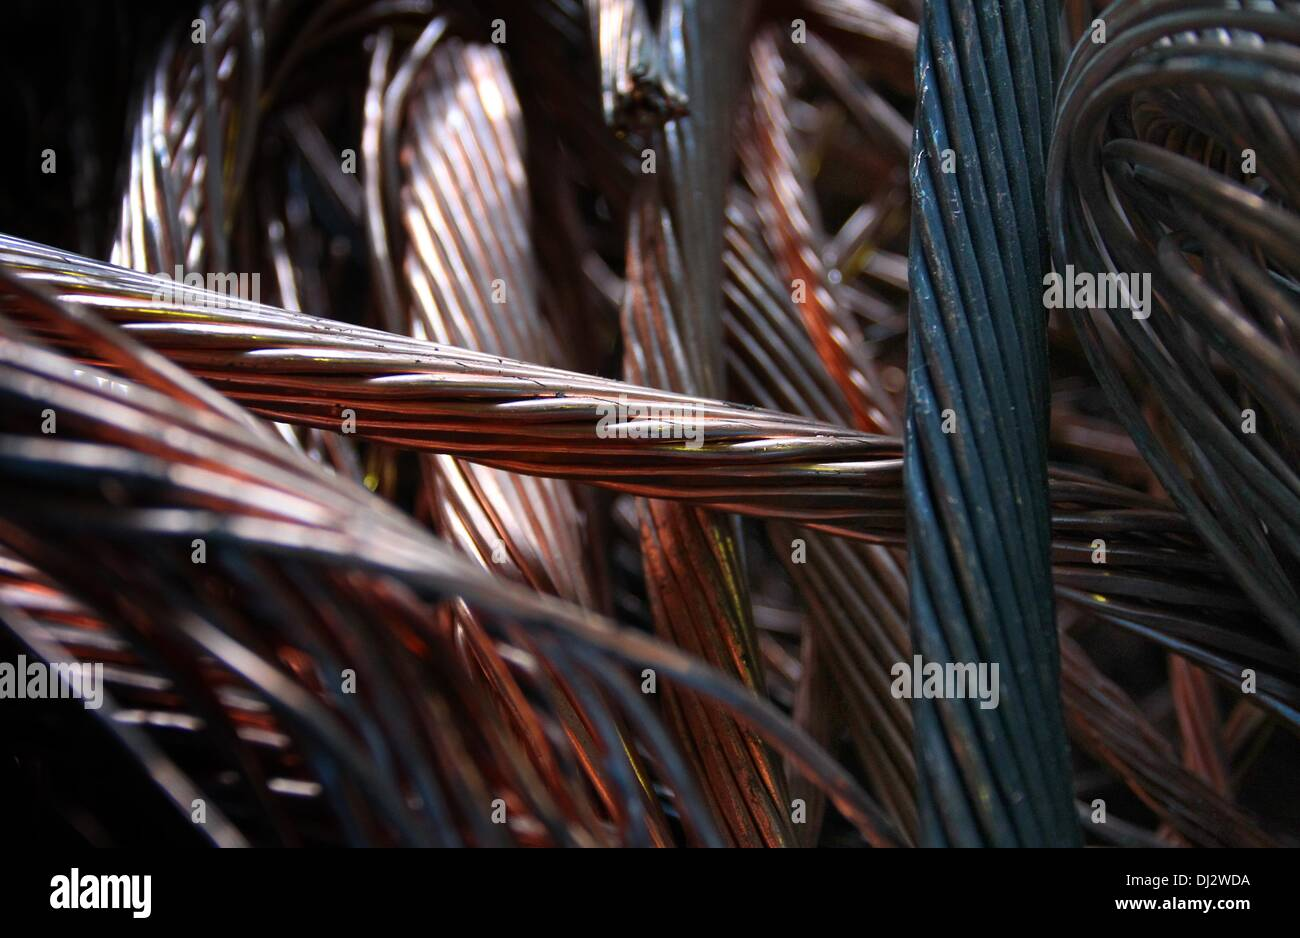 Copper Wires Recycling Scrap Metal Stock Photos & Copper Wires ...